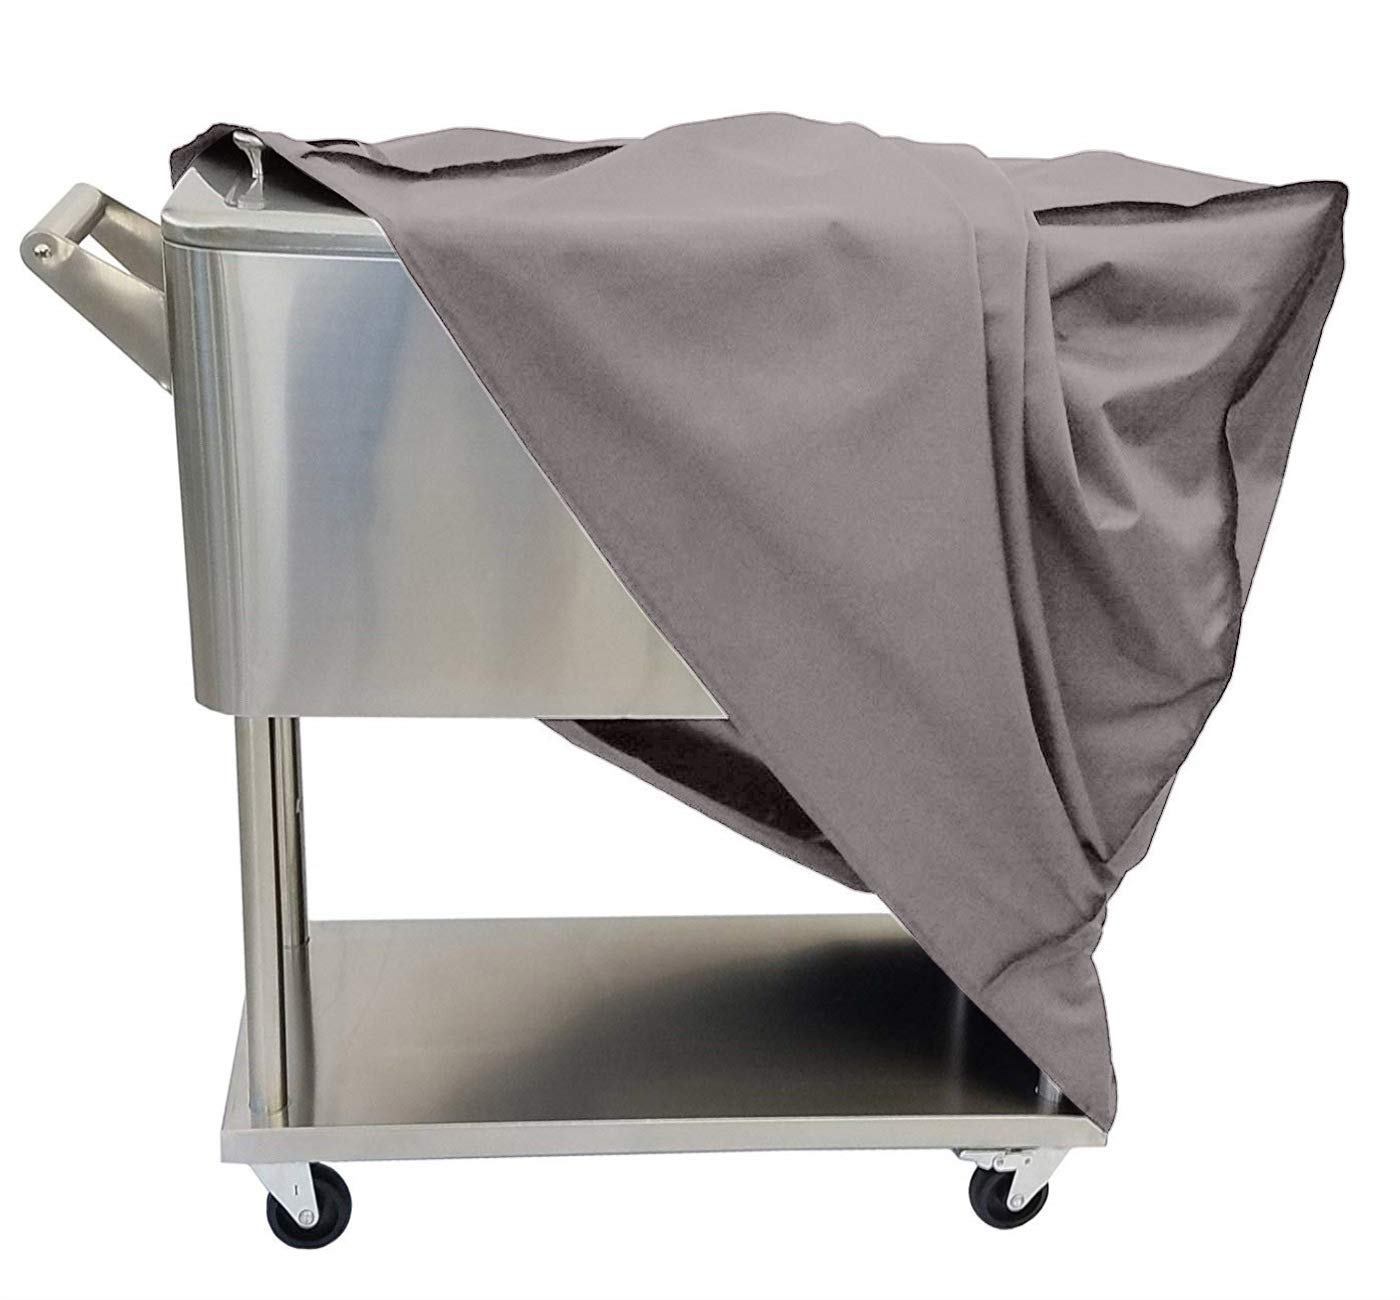 TUYU 80 QT Rolling Cooler Cart Cover, Universal Outdoor Waterproof Protective Cover Fit for Most Cooler, Patio Cooler Dust Cover for Beverage Cart, Rolling Ice Chest, Party Cooler (Grey) by TUYU